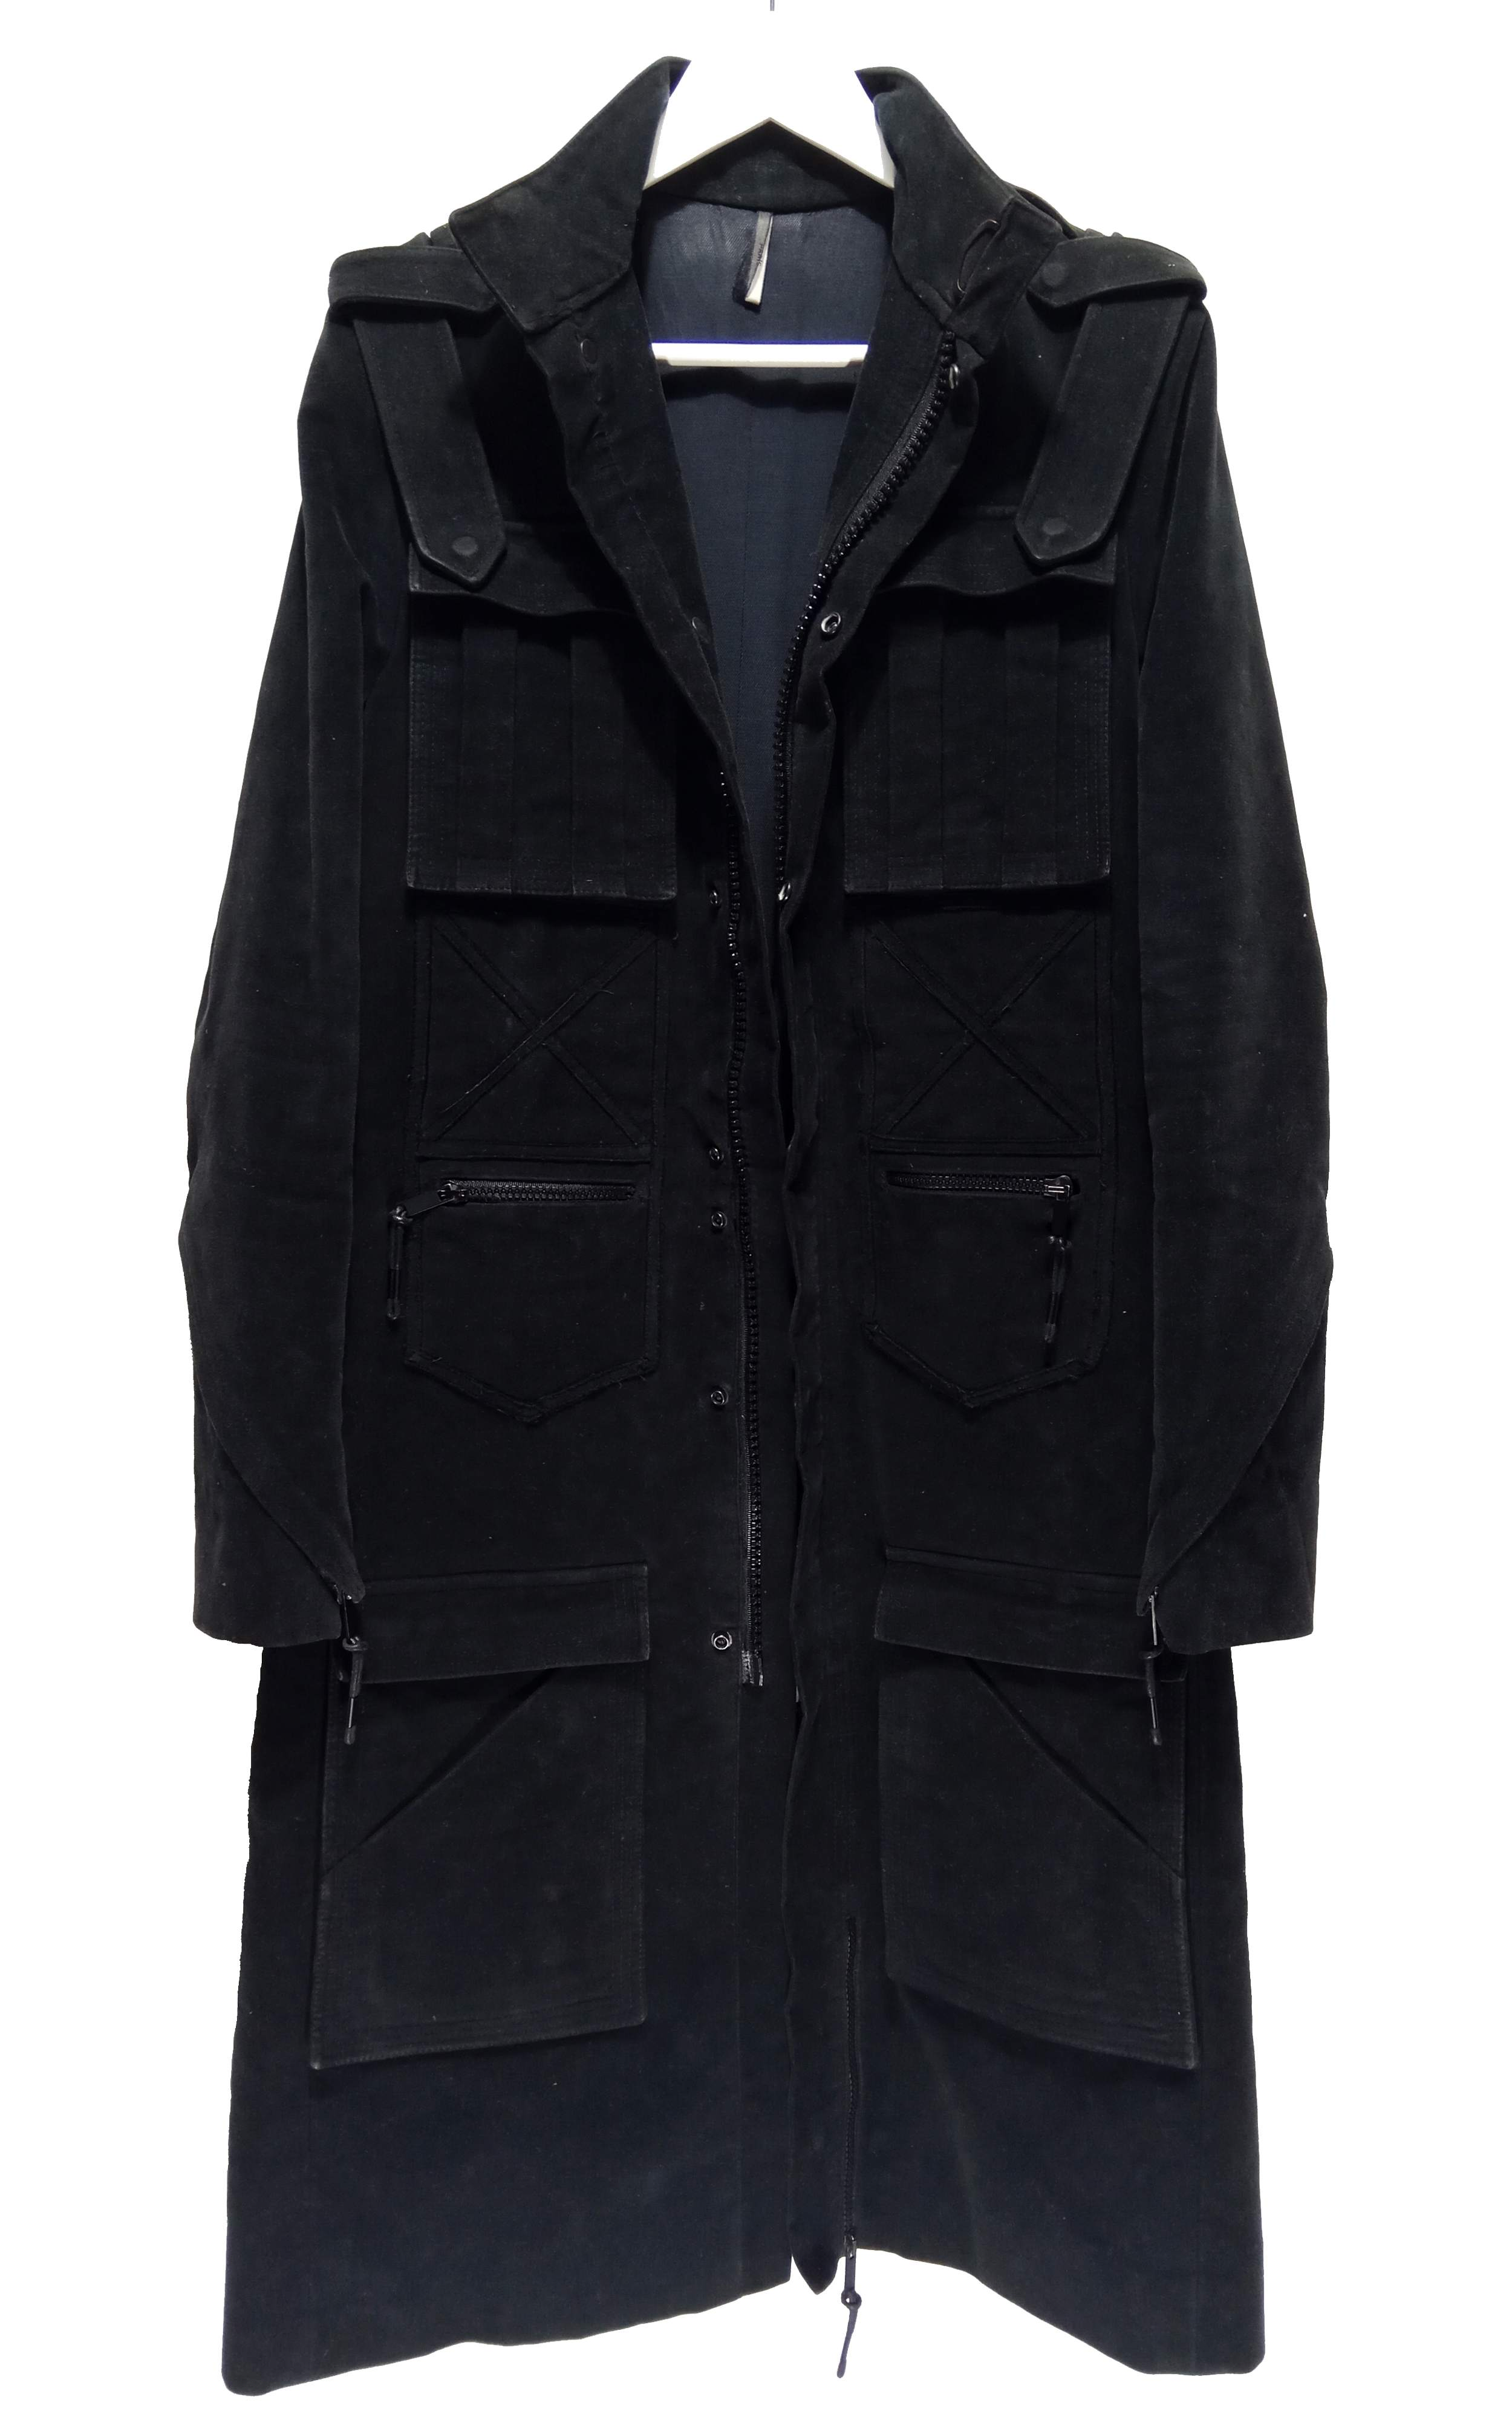 Dior Homme by Hedi Slimane 03AW prototype napoleon military coat